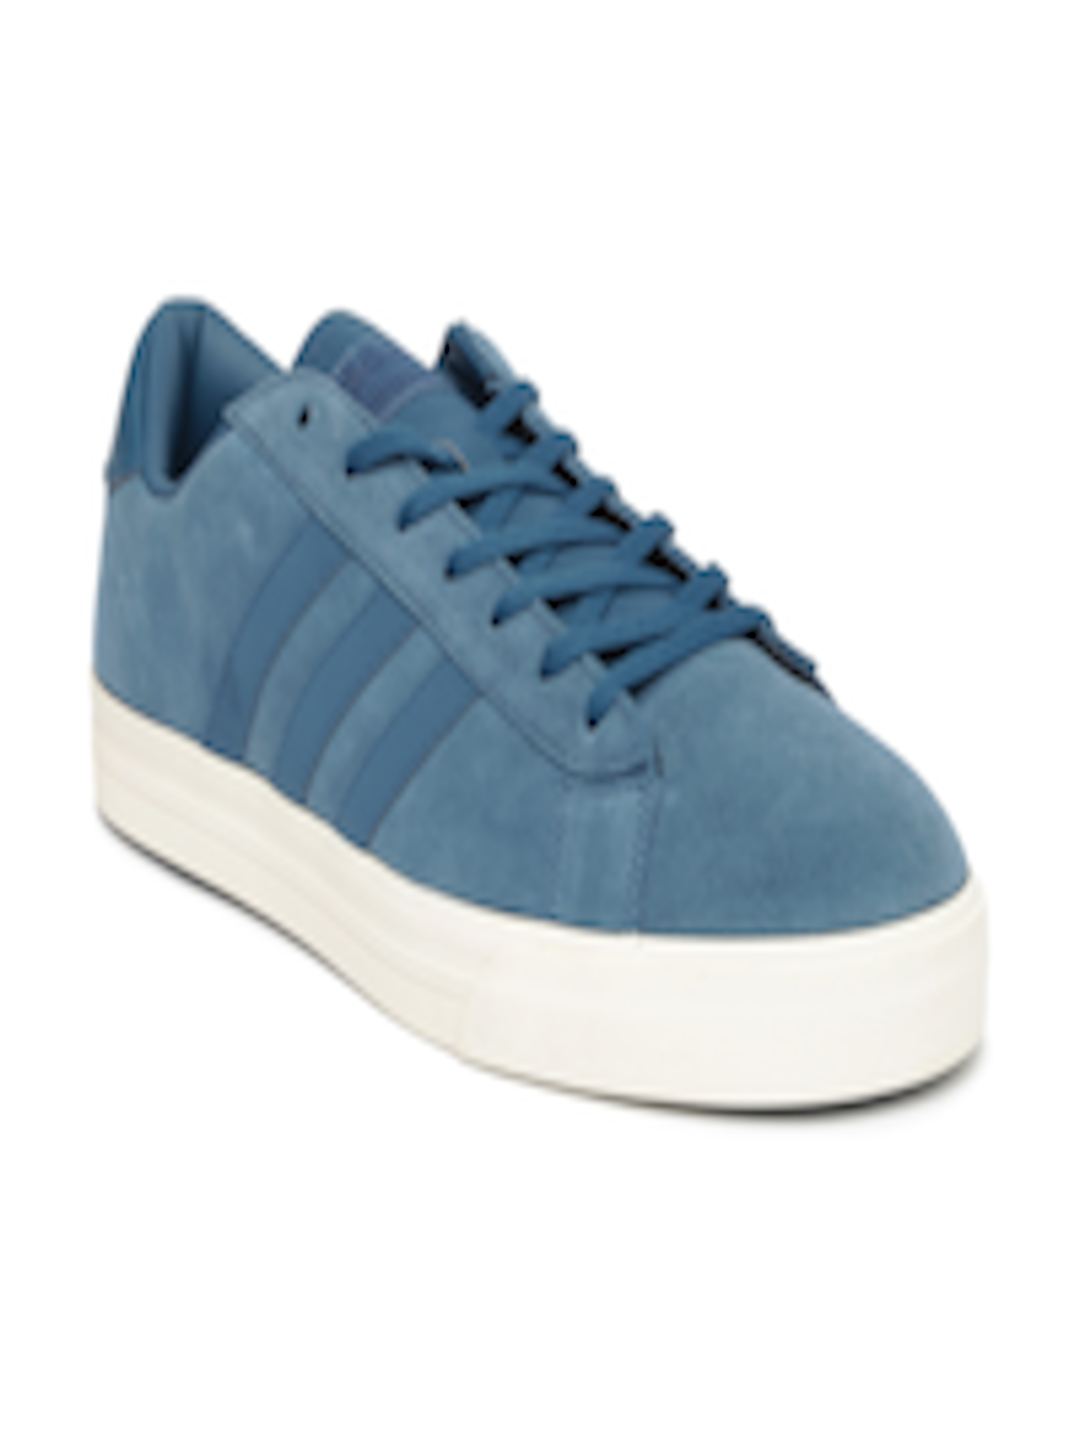 6c4d51d159b Buy ADIDAS NEO Men Blue Solid Suede Leather Cloudfoam Super Daily Sneakers  - Casual Shoes for Men 1731091